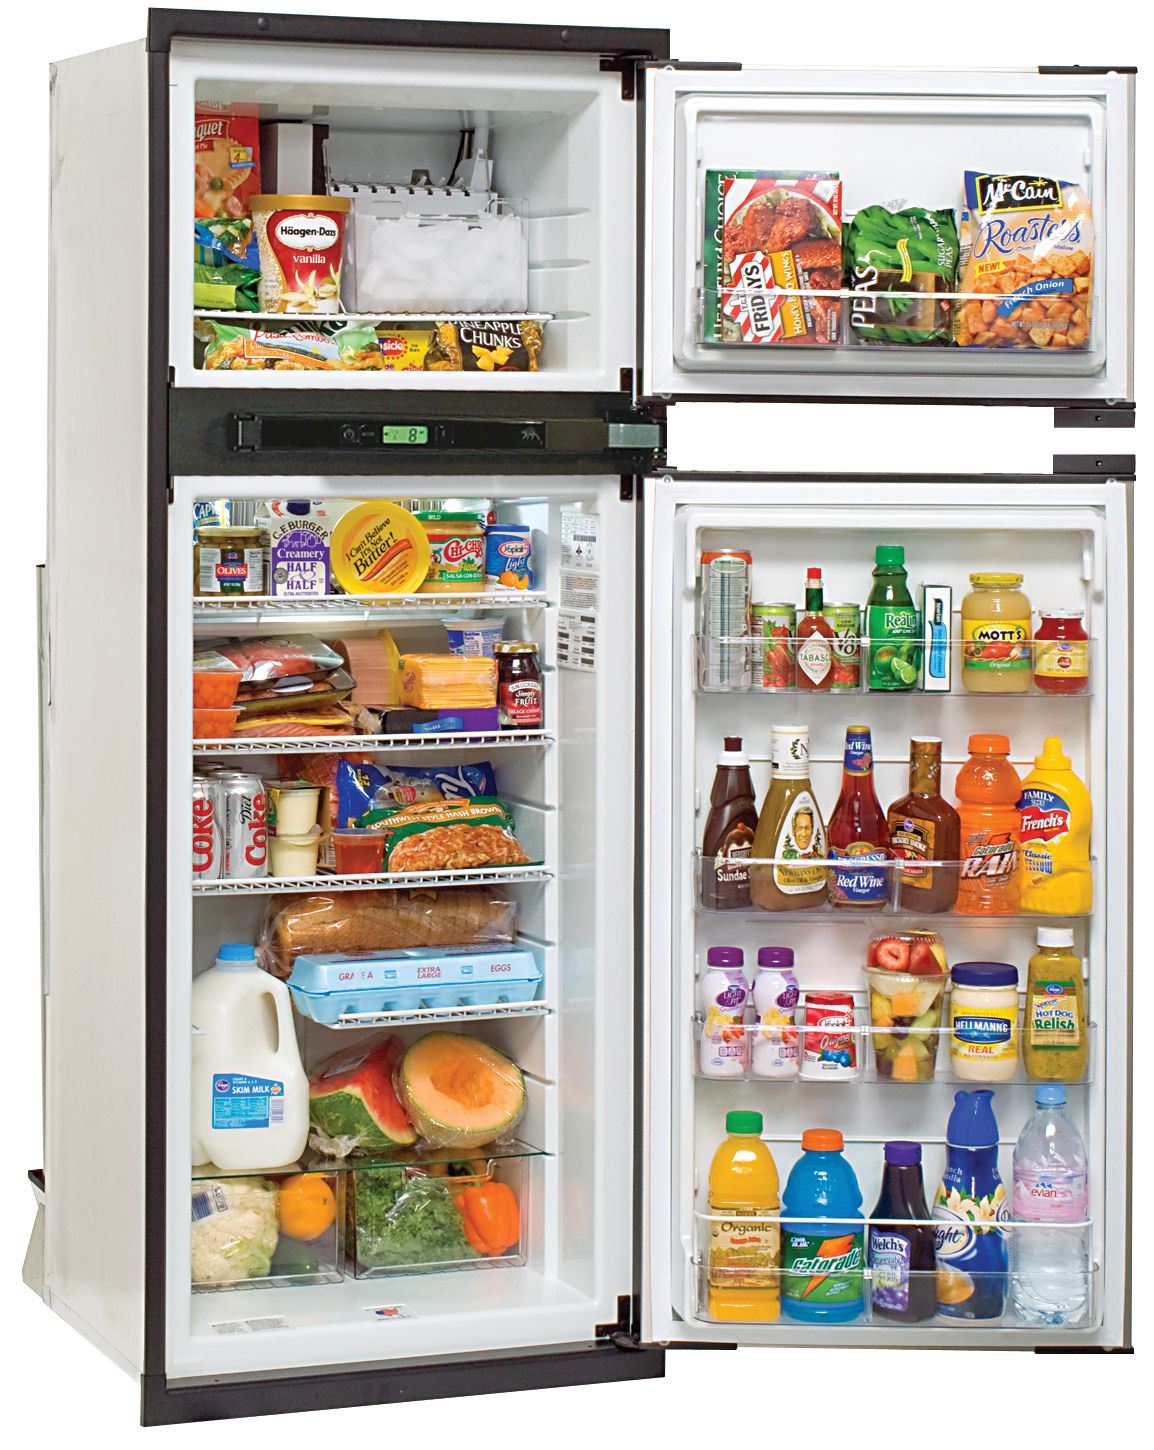 NA8LXL Norcold Refrigerator / Freezer Dual Compartment 2 Door Refrigerator  With Freezer